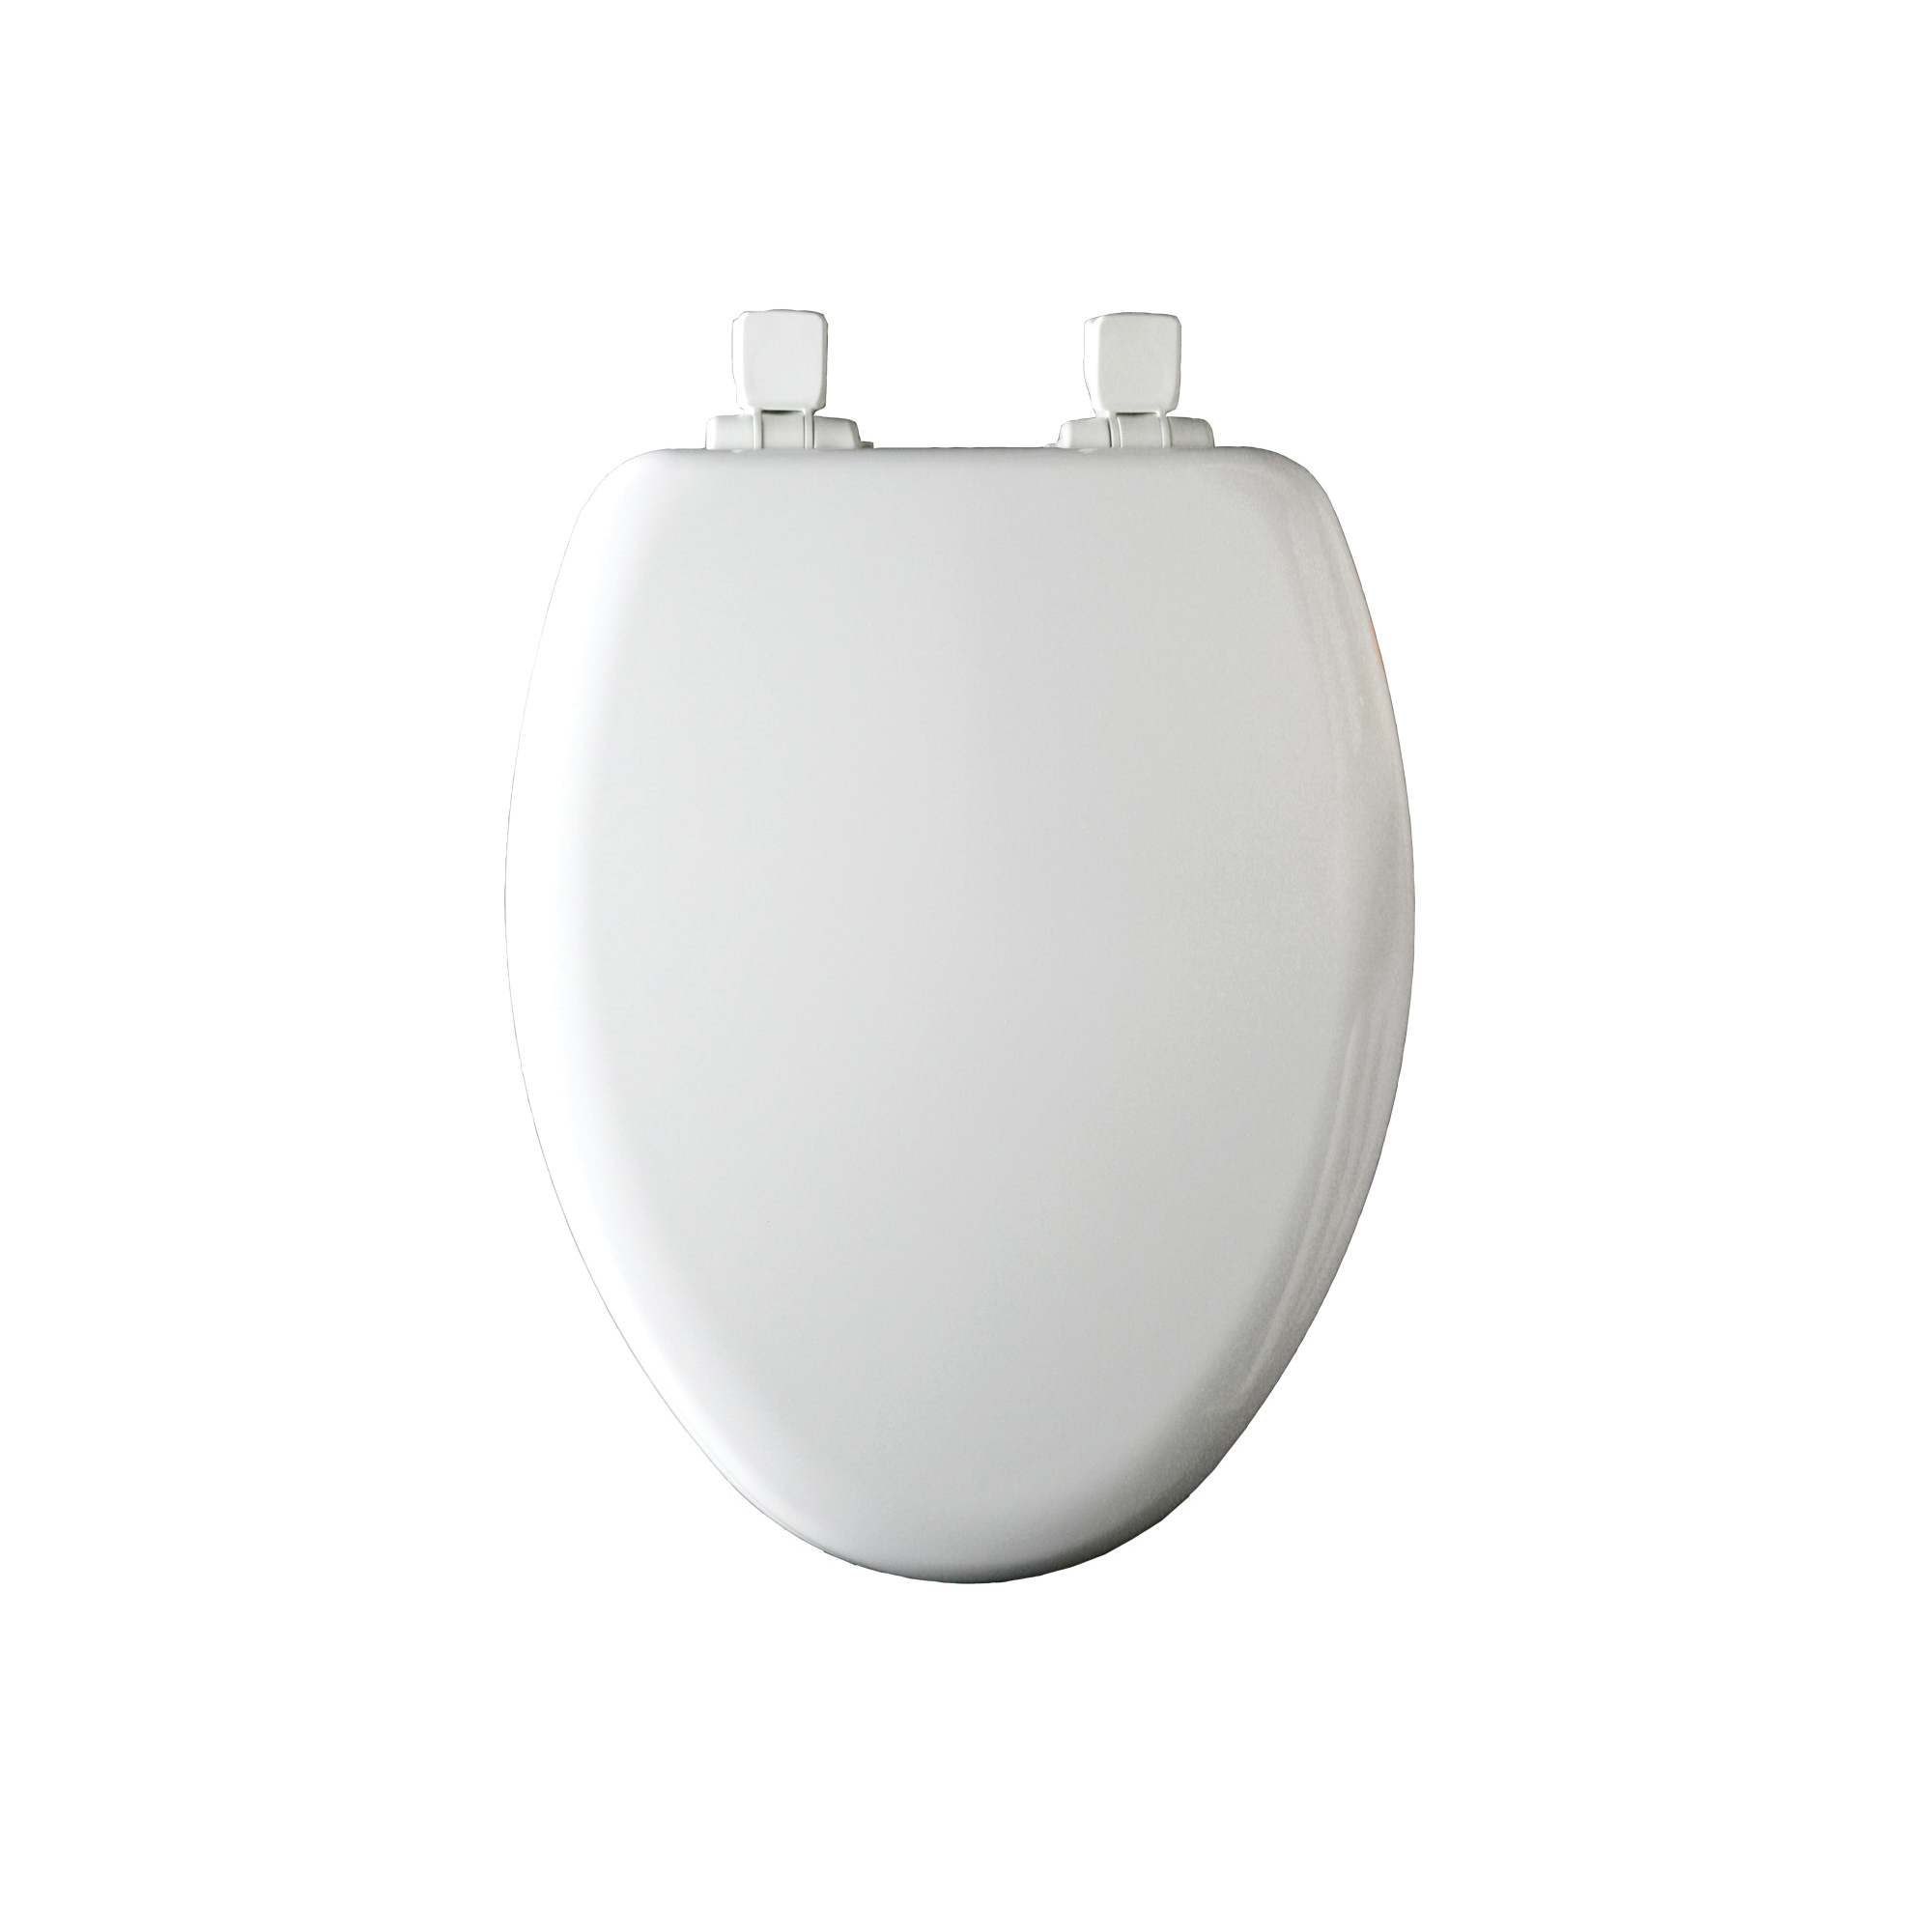 BEMIS CHILD POTTY TRAINING BUILT IN TOILET SEAT REPLACEMENT PART WHITE